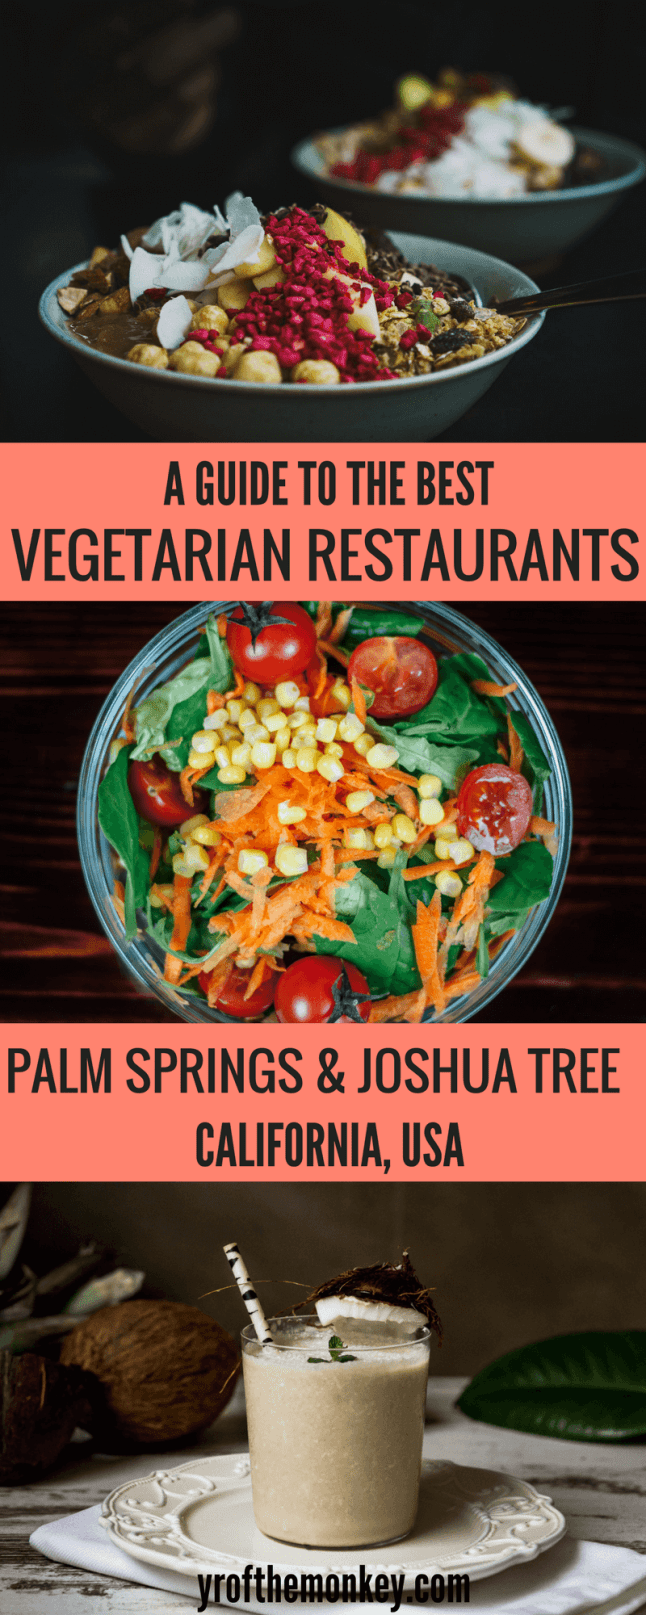 Vegetarian restaurants Palm Springs is your guide to the best Palm Springs vegetarian restaurants and those near Joshua Tree. Features vegetarian Joshua tree restaurants as well. A must read for those vegetarian foodies, pin this guide to your California travel board! #palmsprings #vegetarian #california #joshuatree #joshuatreenationalpark #vegetariandining